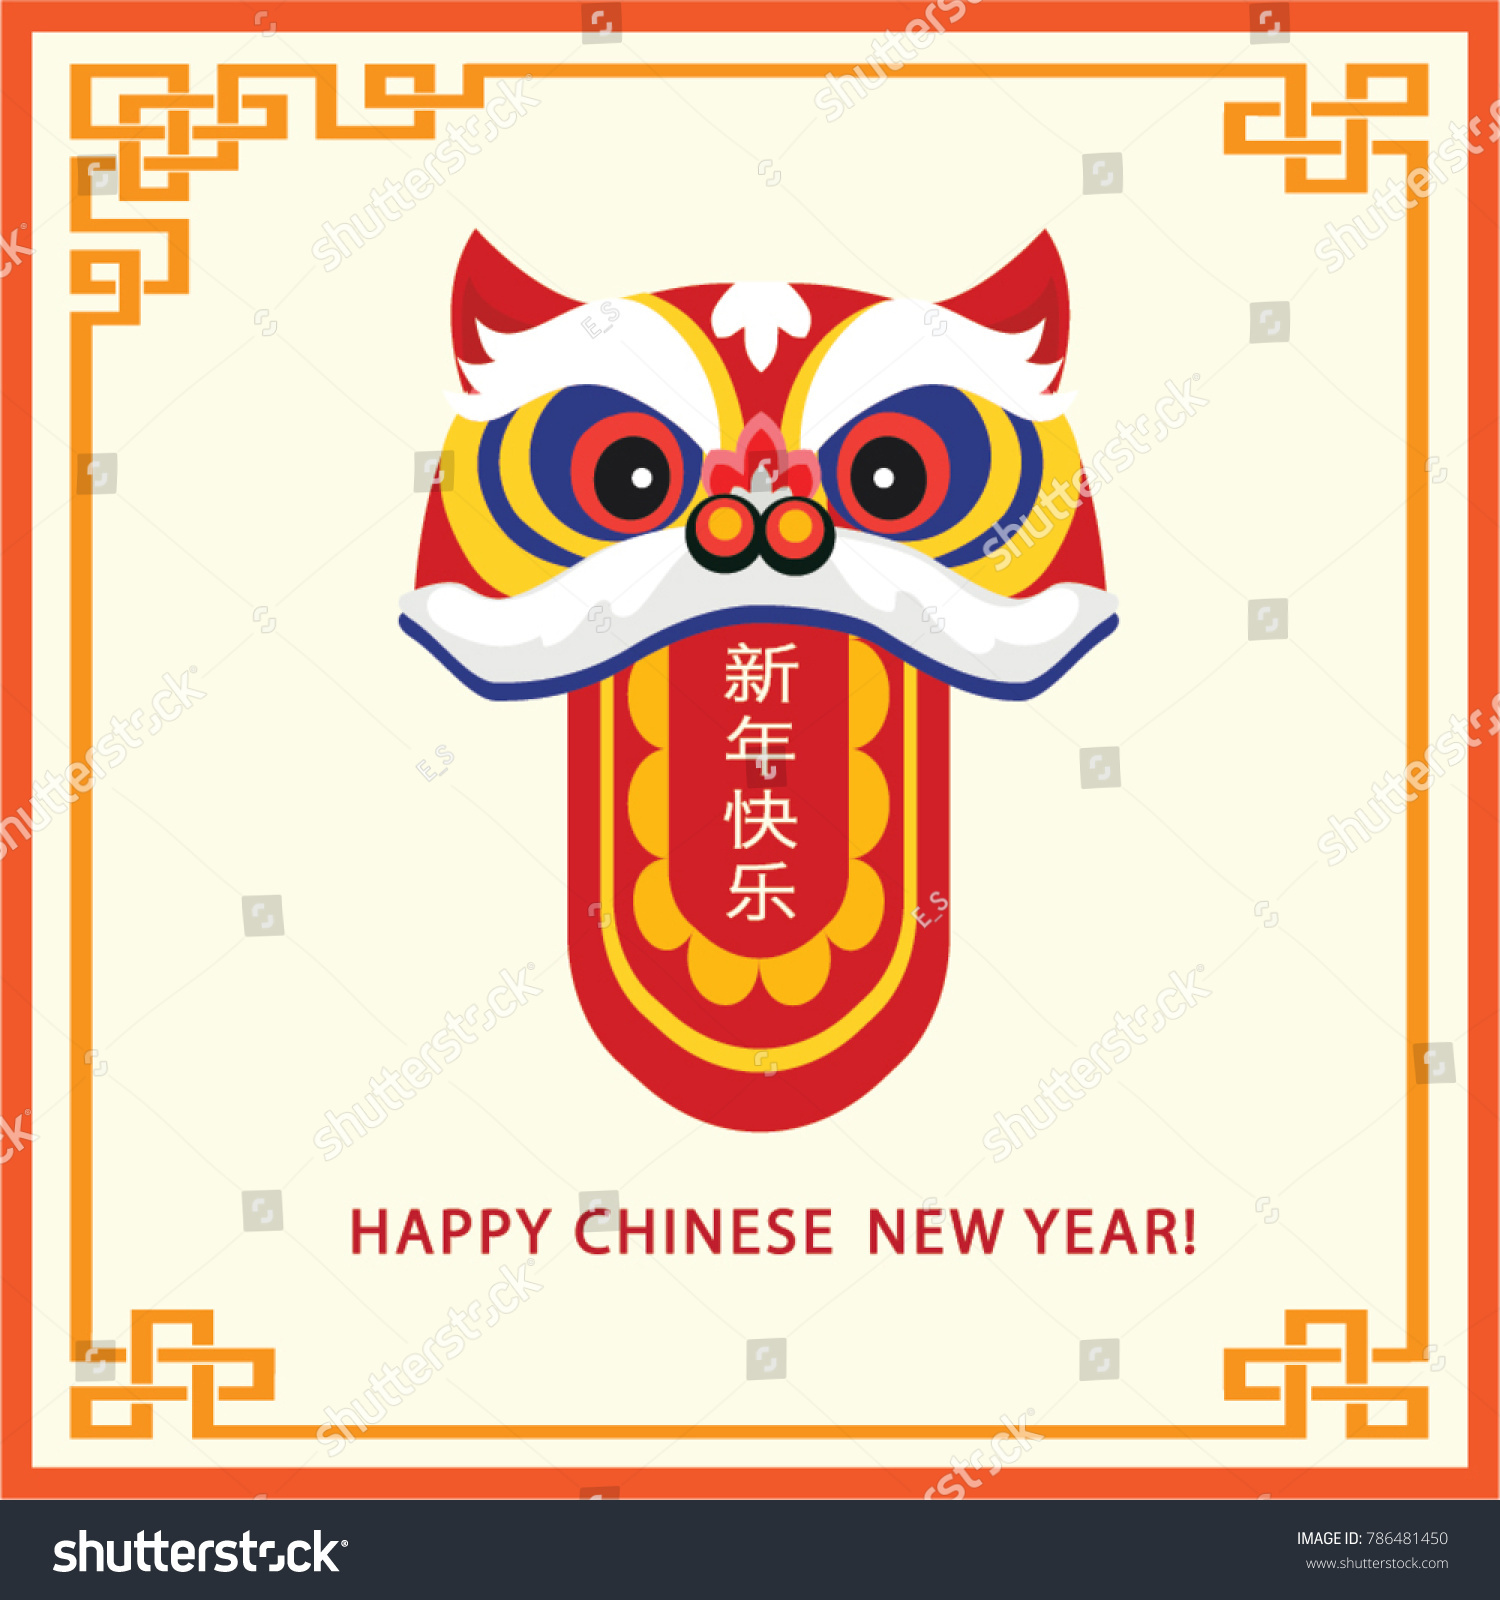 Chinese new year greeting lion dance stock vector royalty free chinese new year greeting lion dance chinese new year in english m4hsunfo